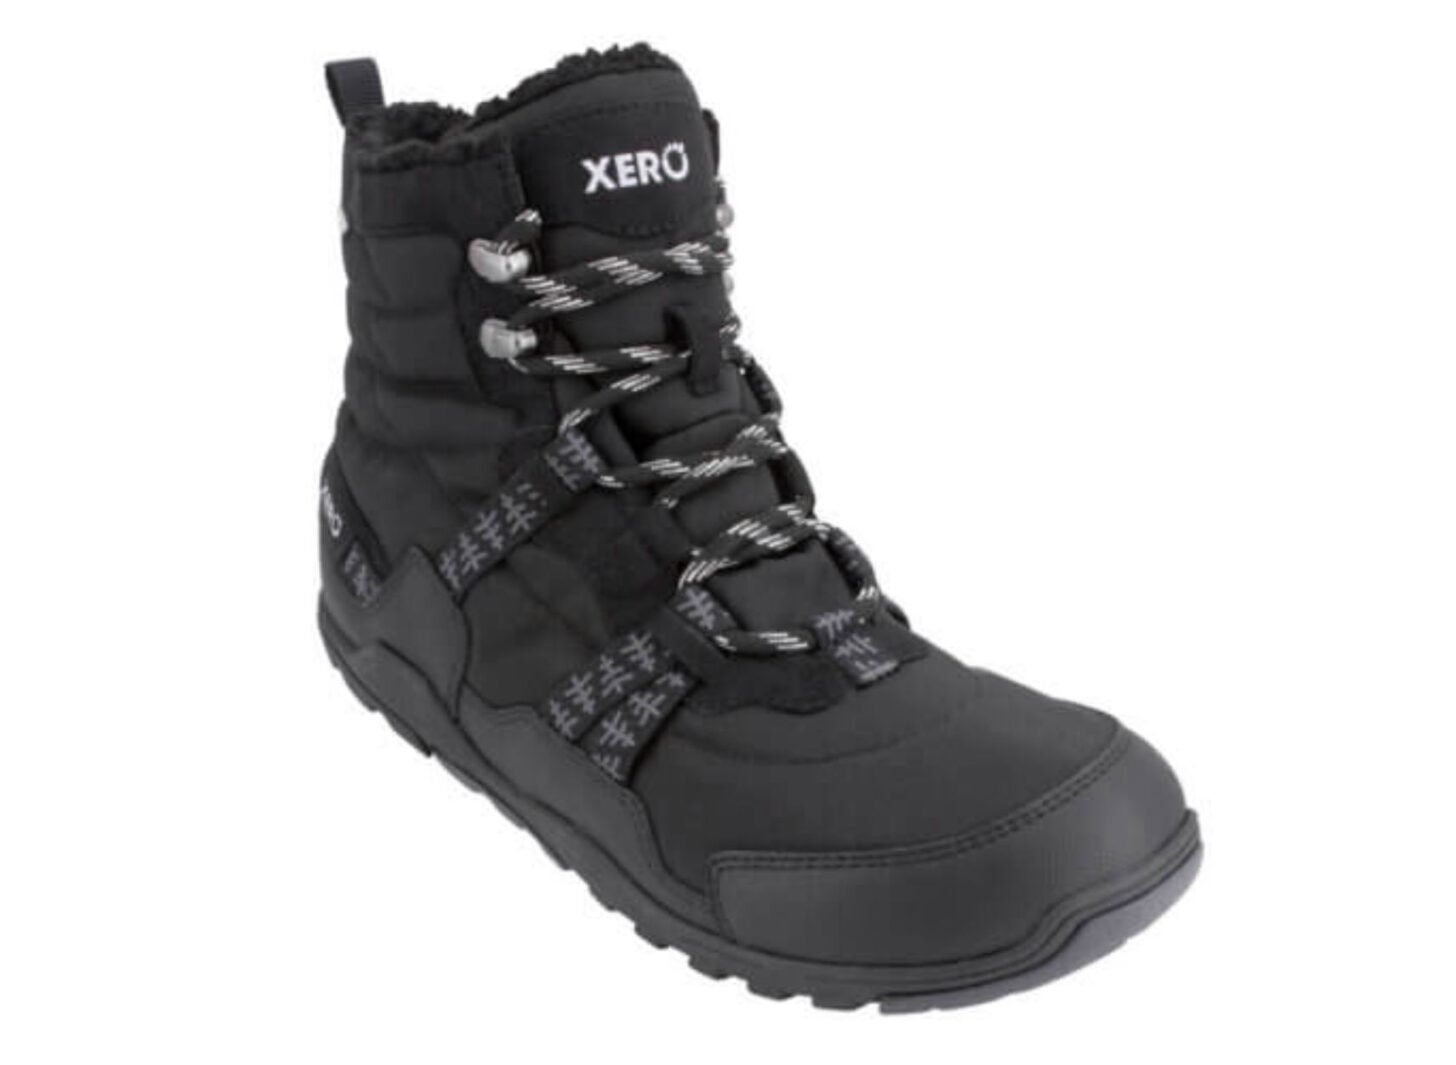 Xero Shoes Alpine Snow Boot - stock image